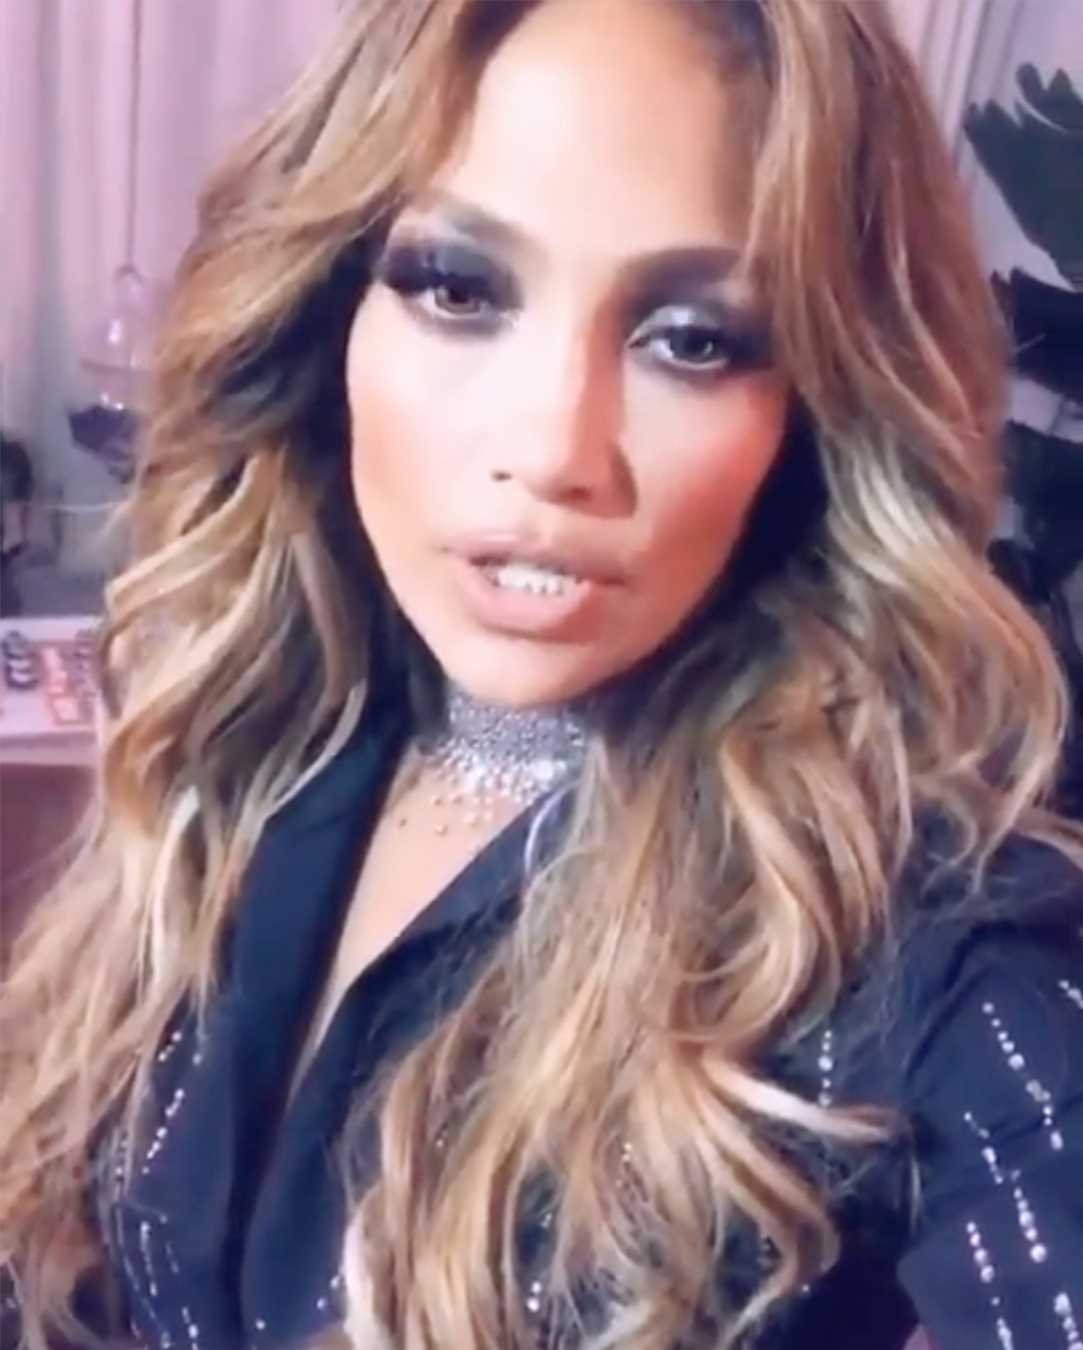 J. Lo Reschedules NYC Concert After Power Outage Cuts it Short: 'No Blackouts This Time!'